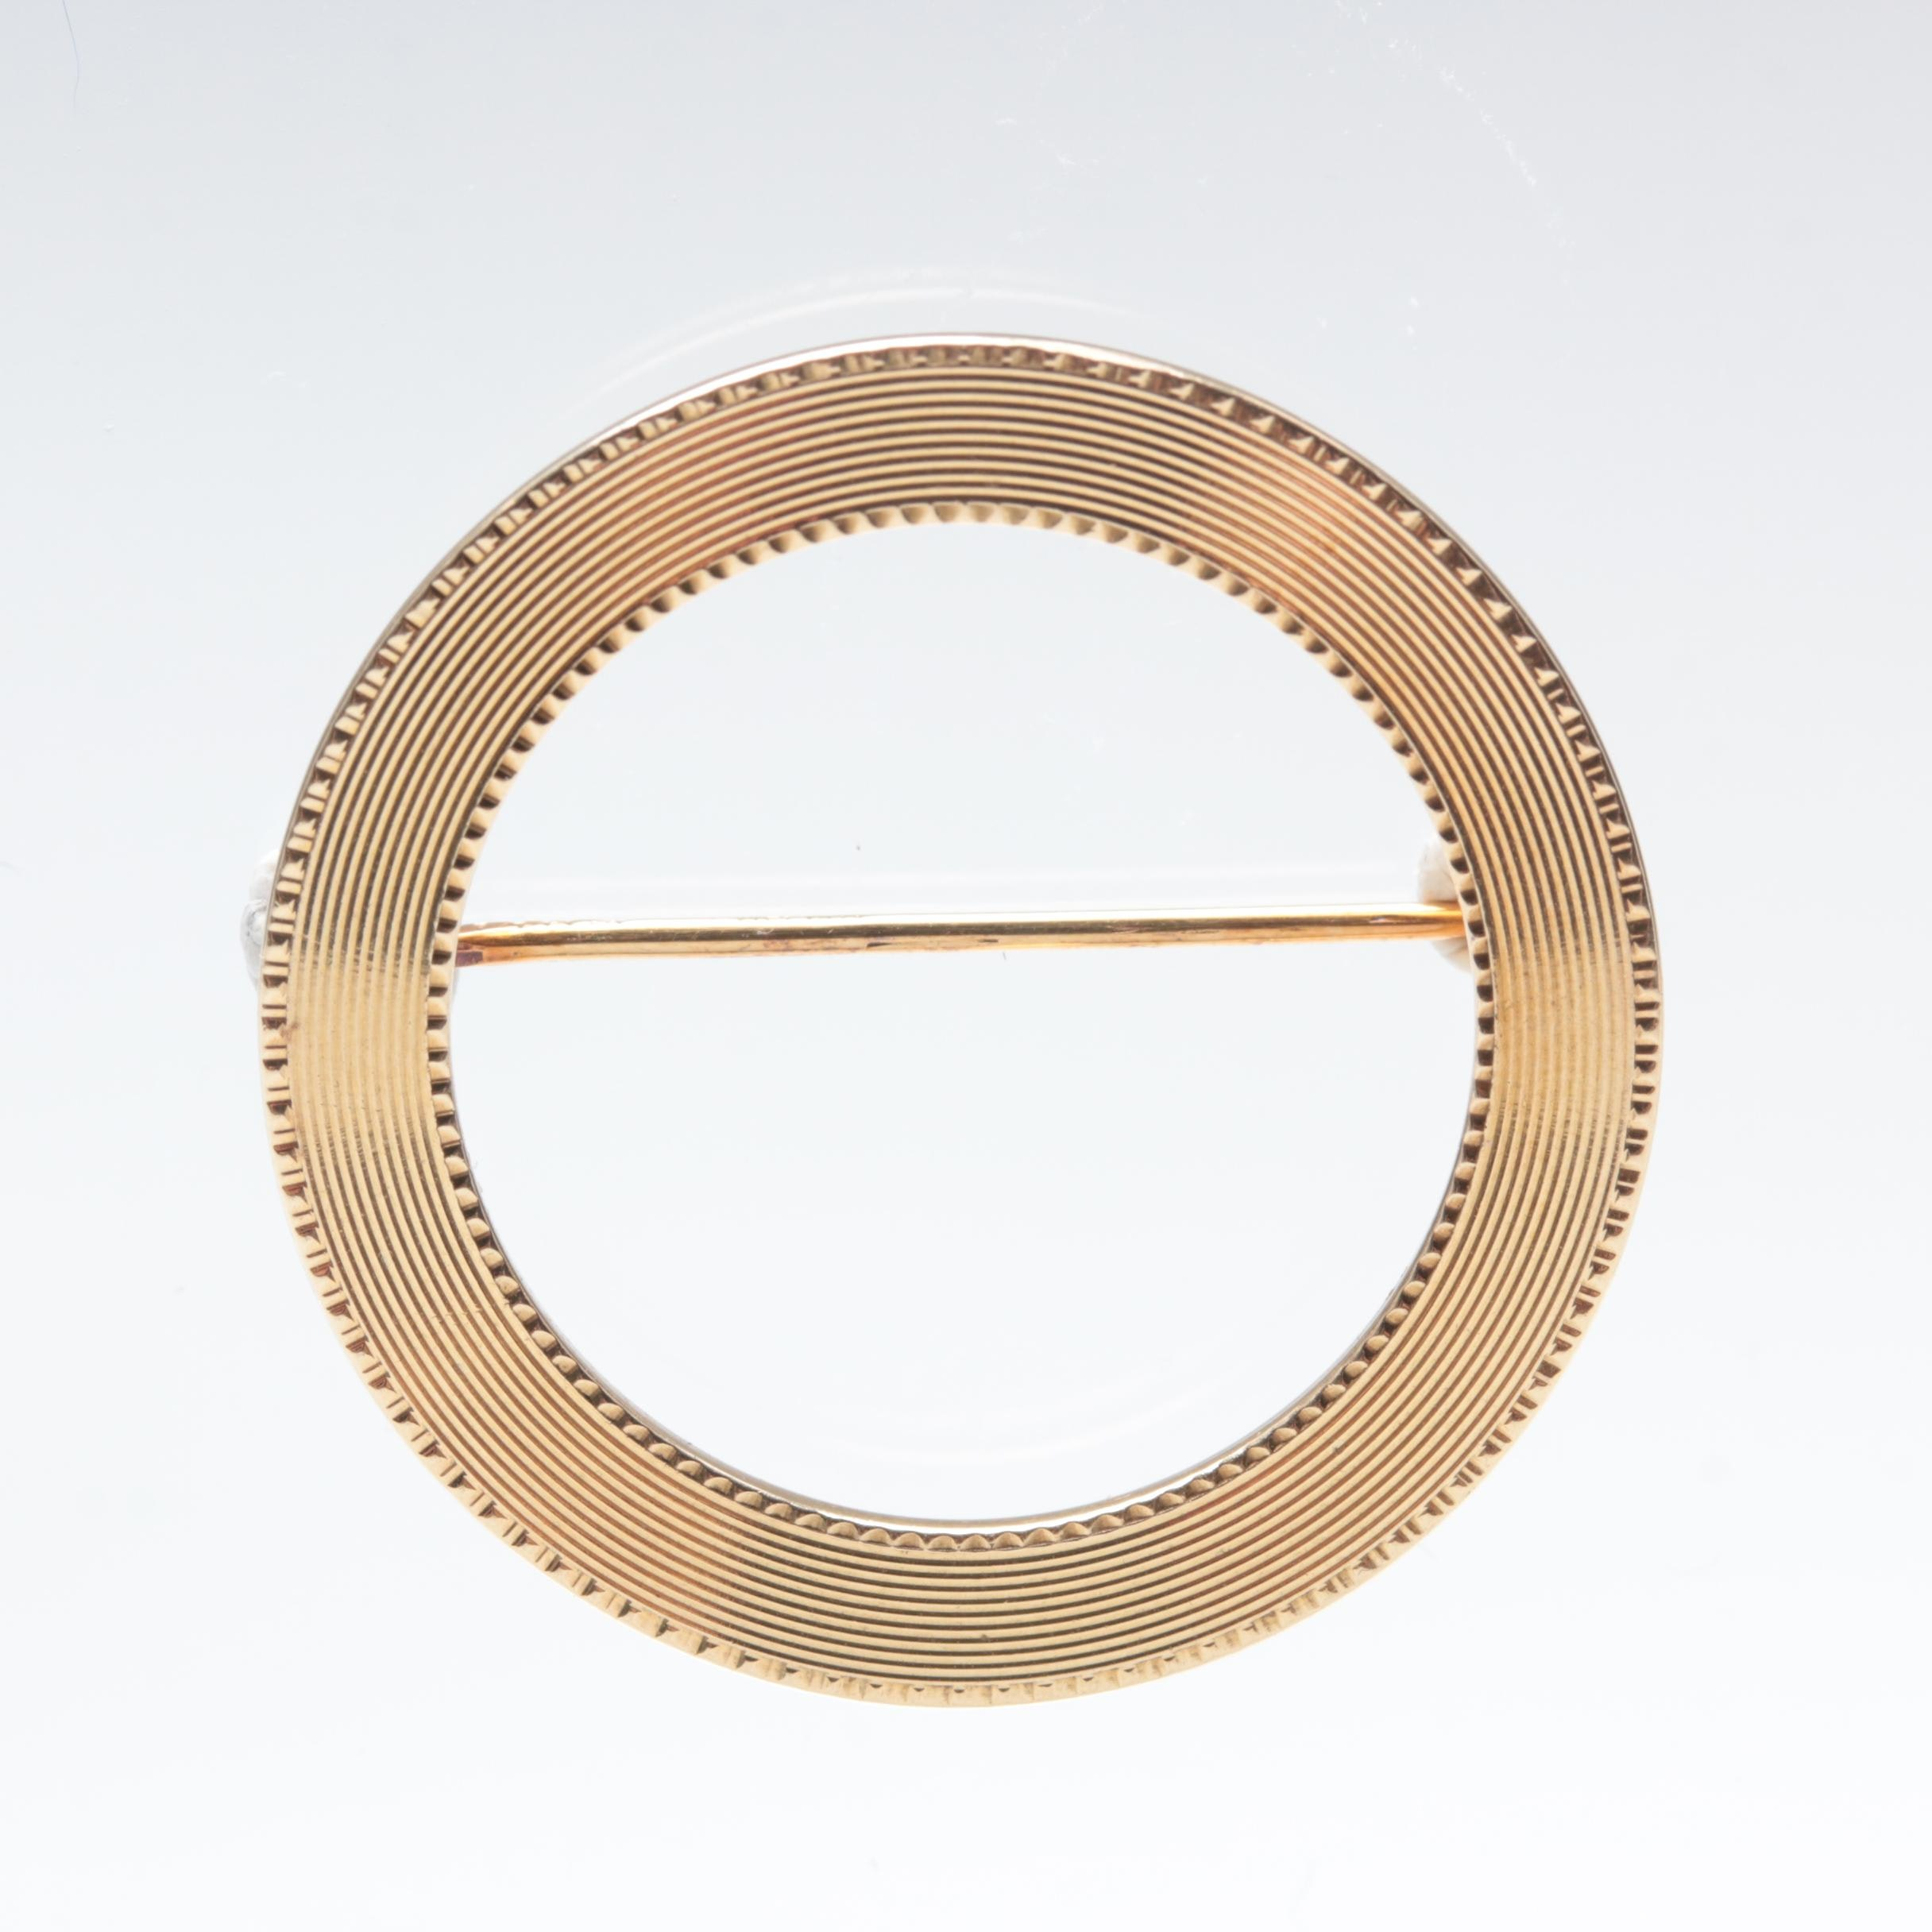 14K Yellow Gold Circle Brooch